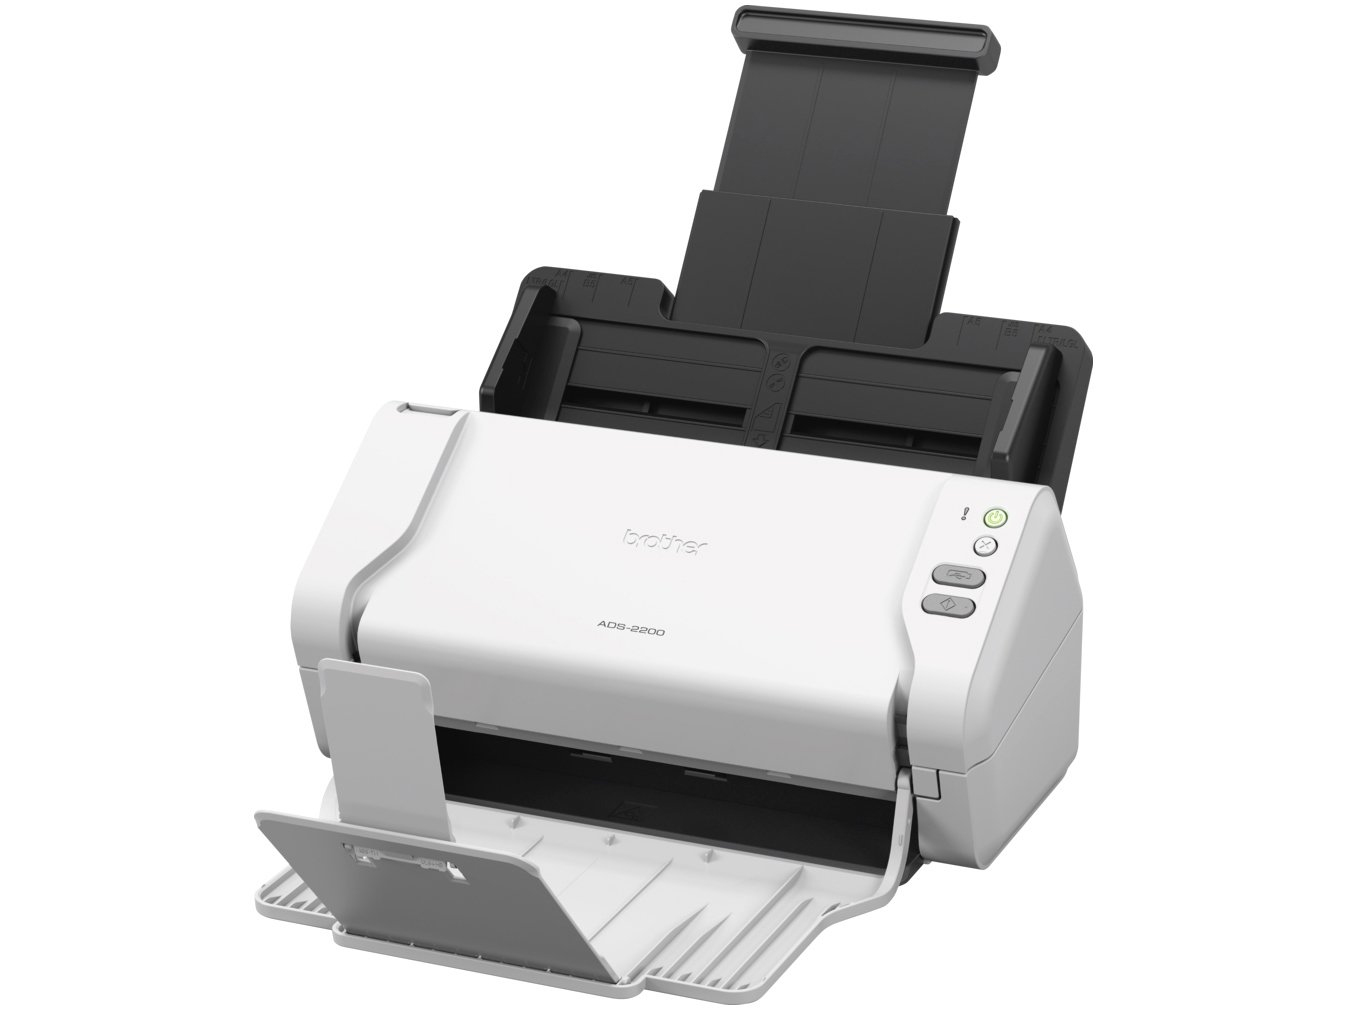 Foto 5 - Scanner de Mesa Brother ADS-2200 Colorido - 600dpi